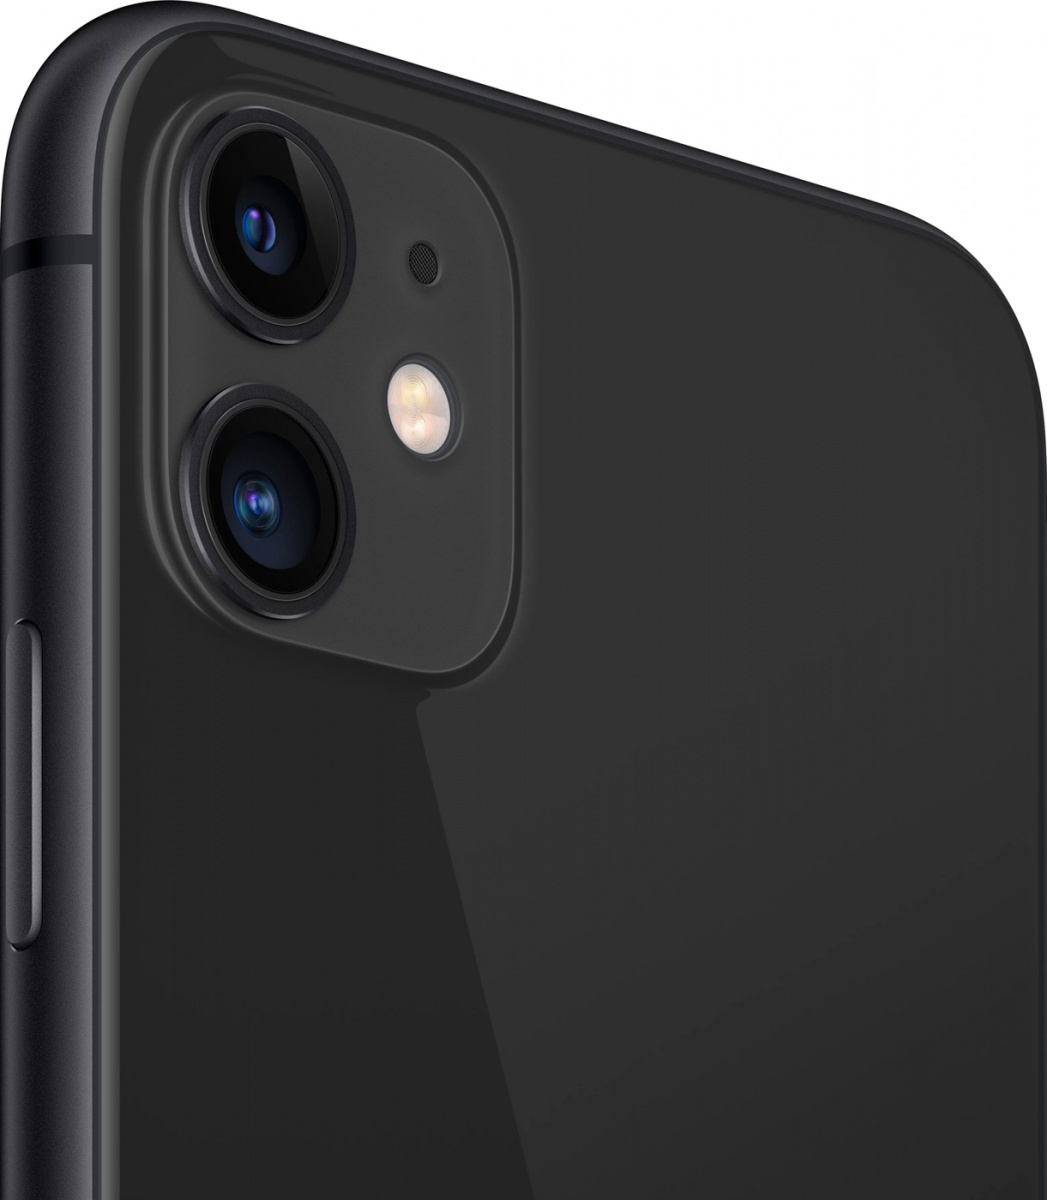 Смартфон Apple iPhone 11 Черный / 128 ГБ